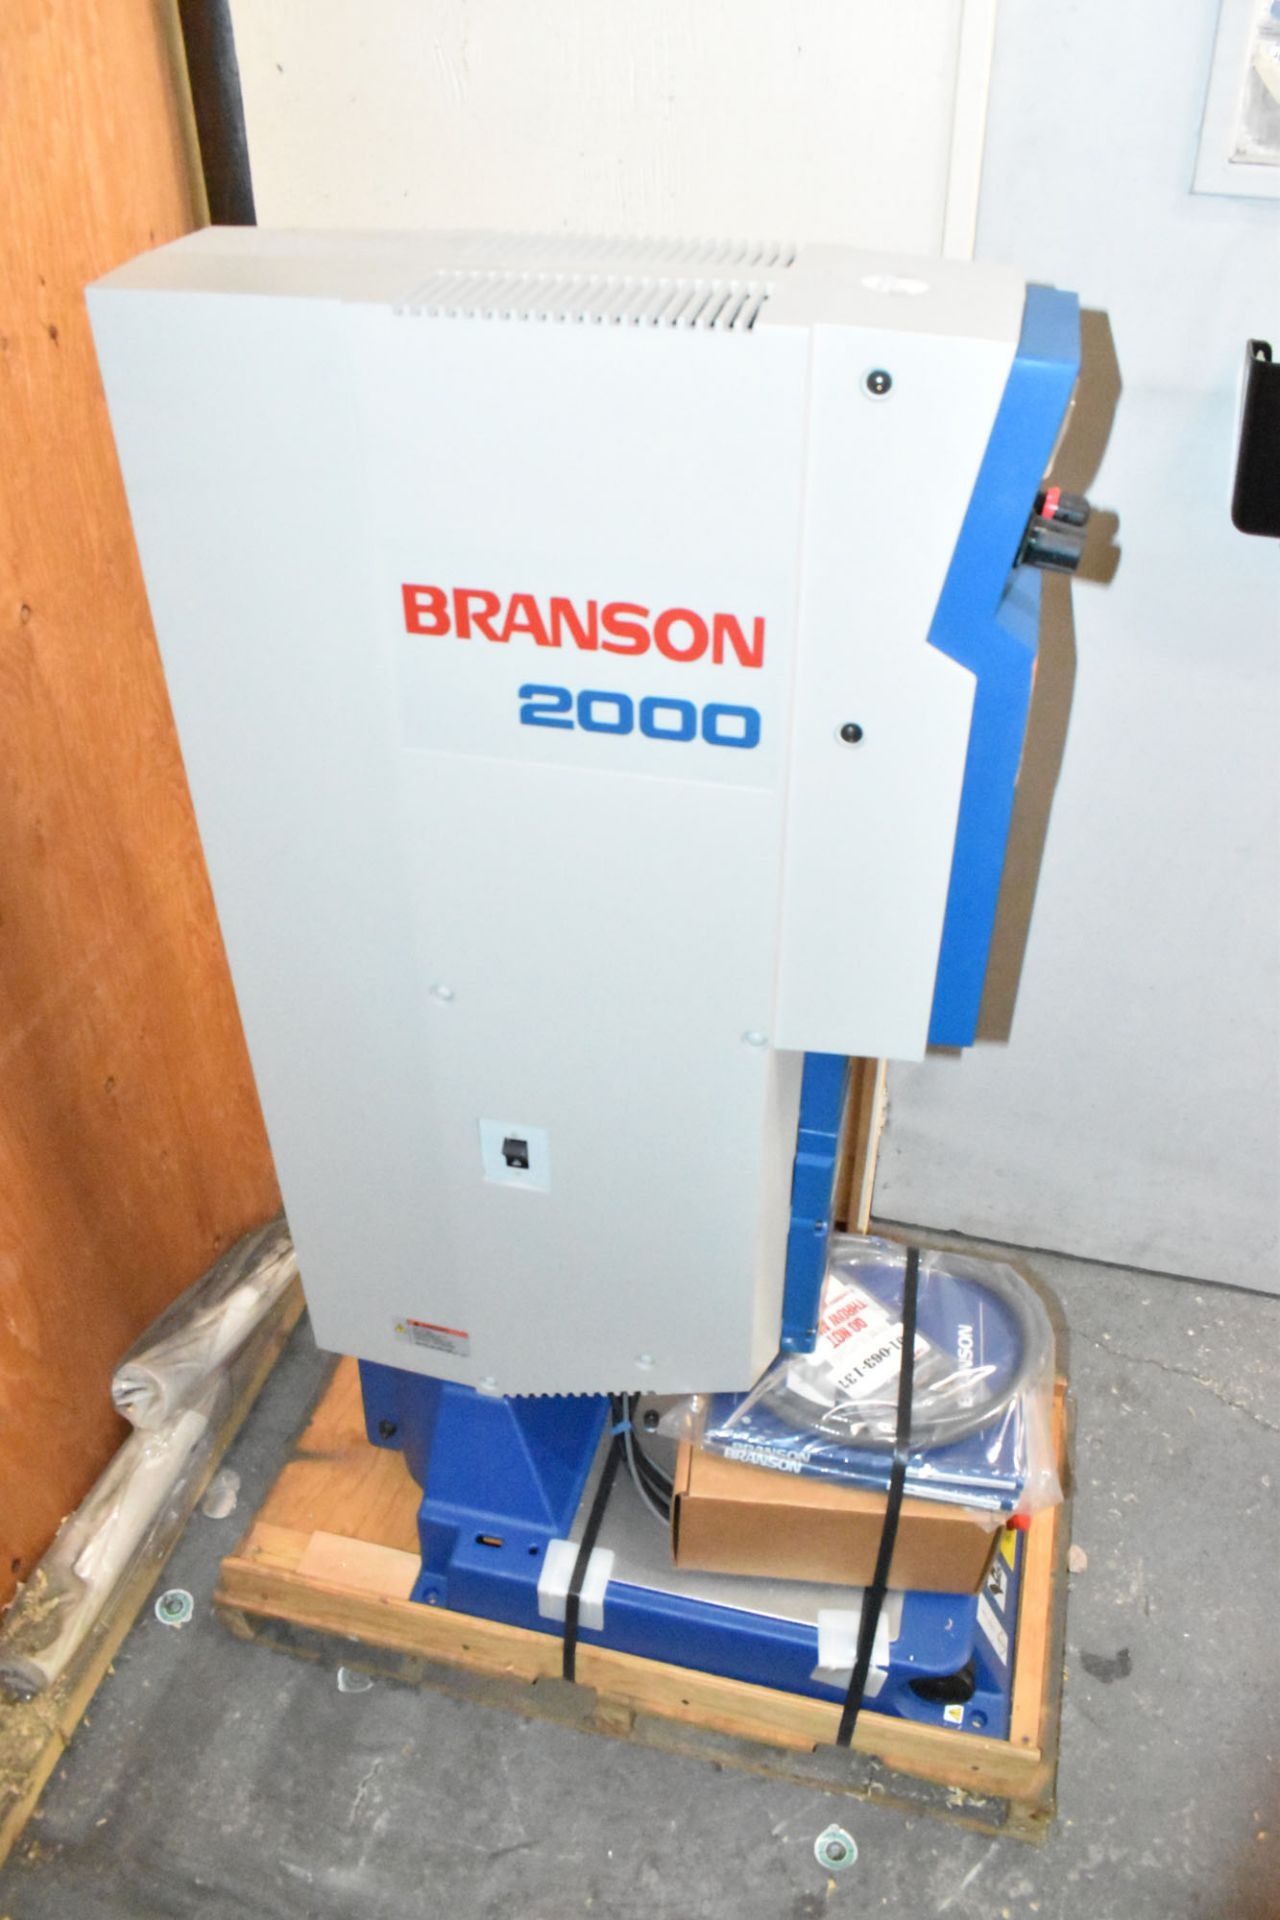 BRANSON (2006) 2000IW INTEGRATED ULTRASONIC PLASTIC WELDER WITH 1200W, S/N: WLA06046695 (BRAND - Image 2 of 6